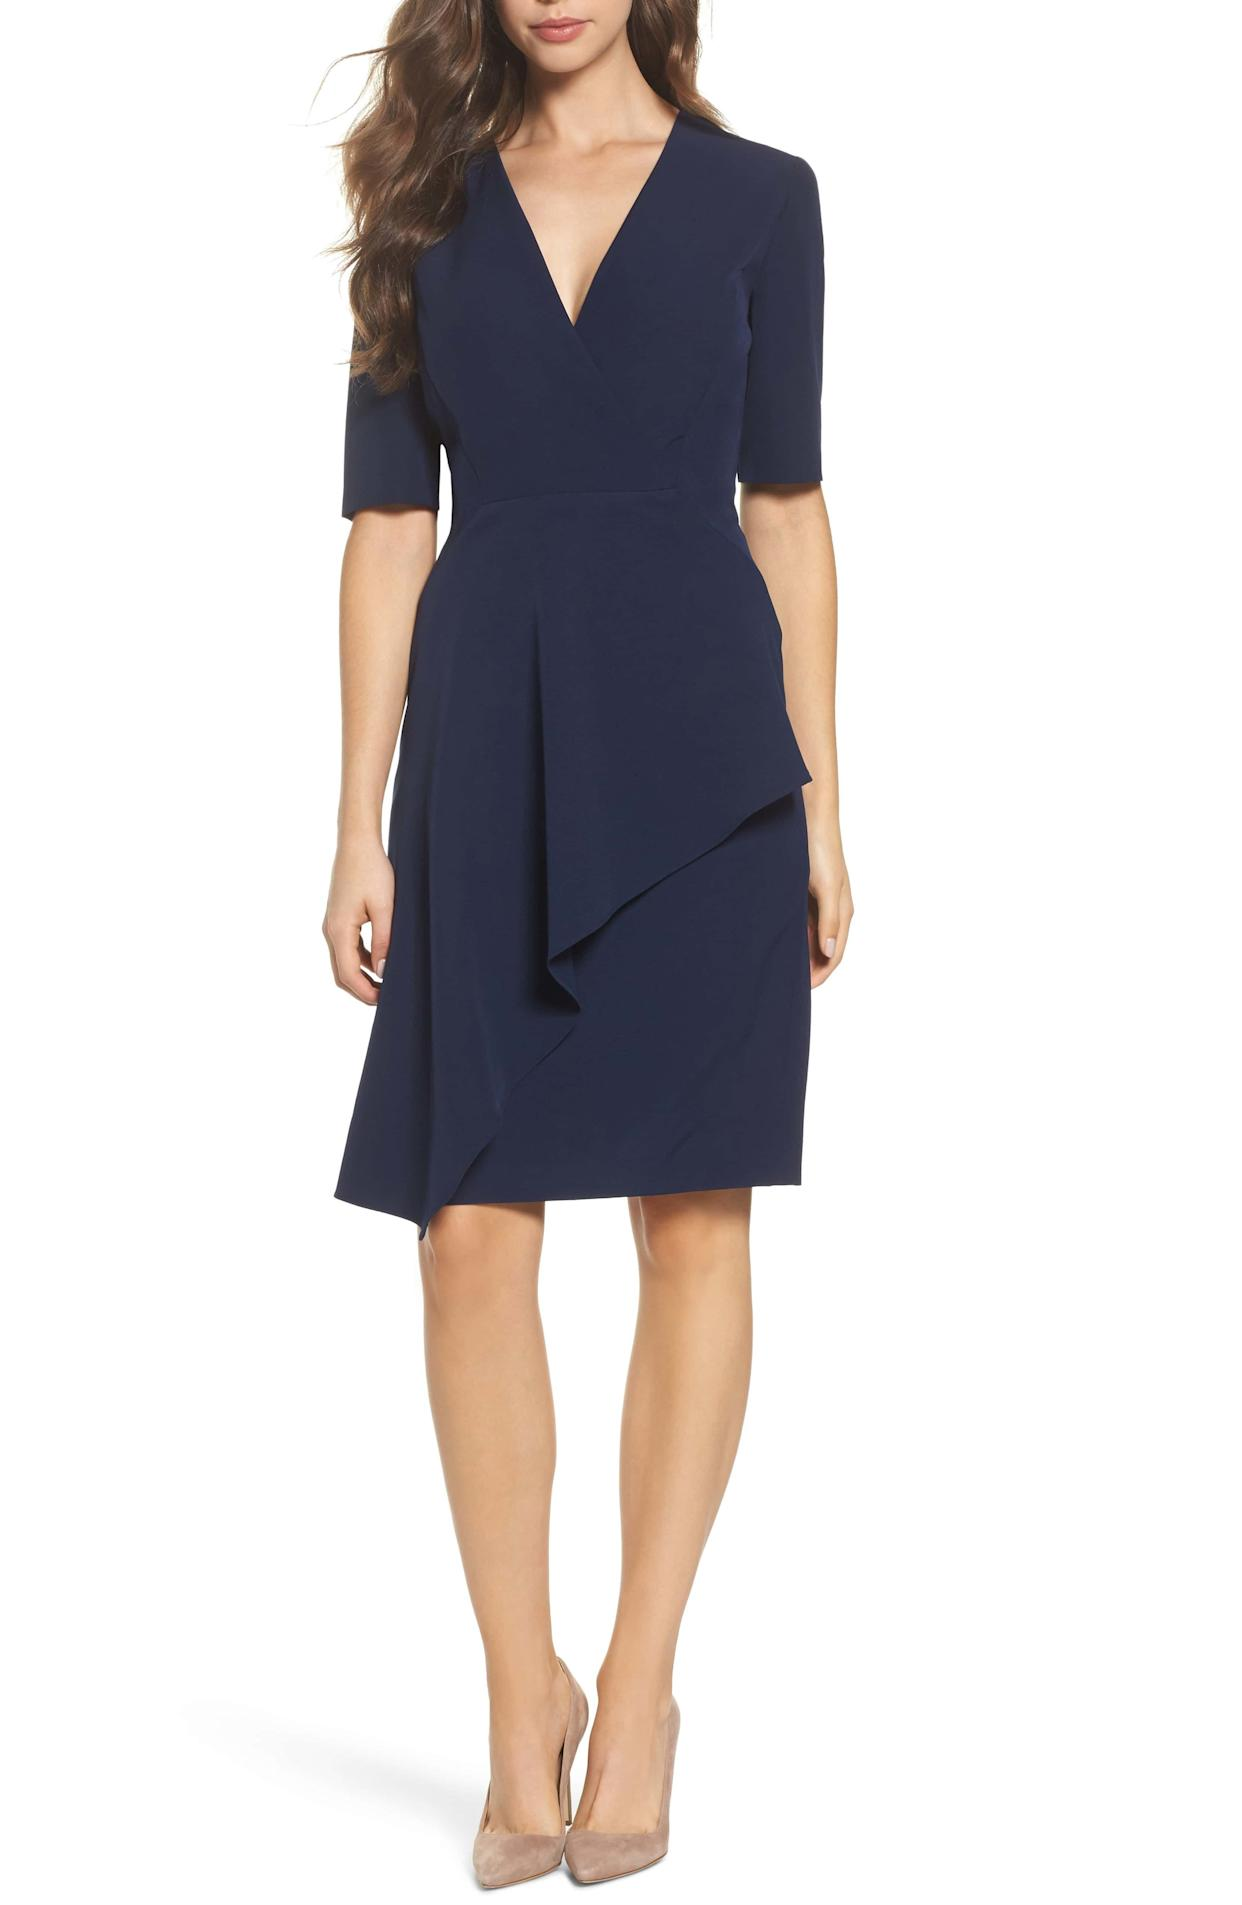 "<strong><a href=""https://shop.nordstrom.com/s/maggy-london-solid-dream-crepe-sheath-dress/5140295"" rel=""nofollow noopener"" target=""_blank"" data-ylk=""slk:Maggy London dream crepe sheath dress"" class=""link rapid-noclick-resp"">Maggy London dream crepe sheath dress</a>, $138</strong>"